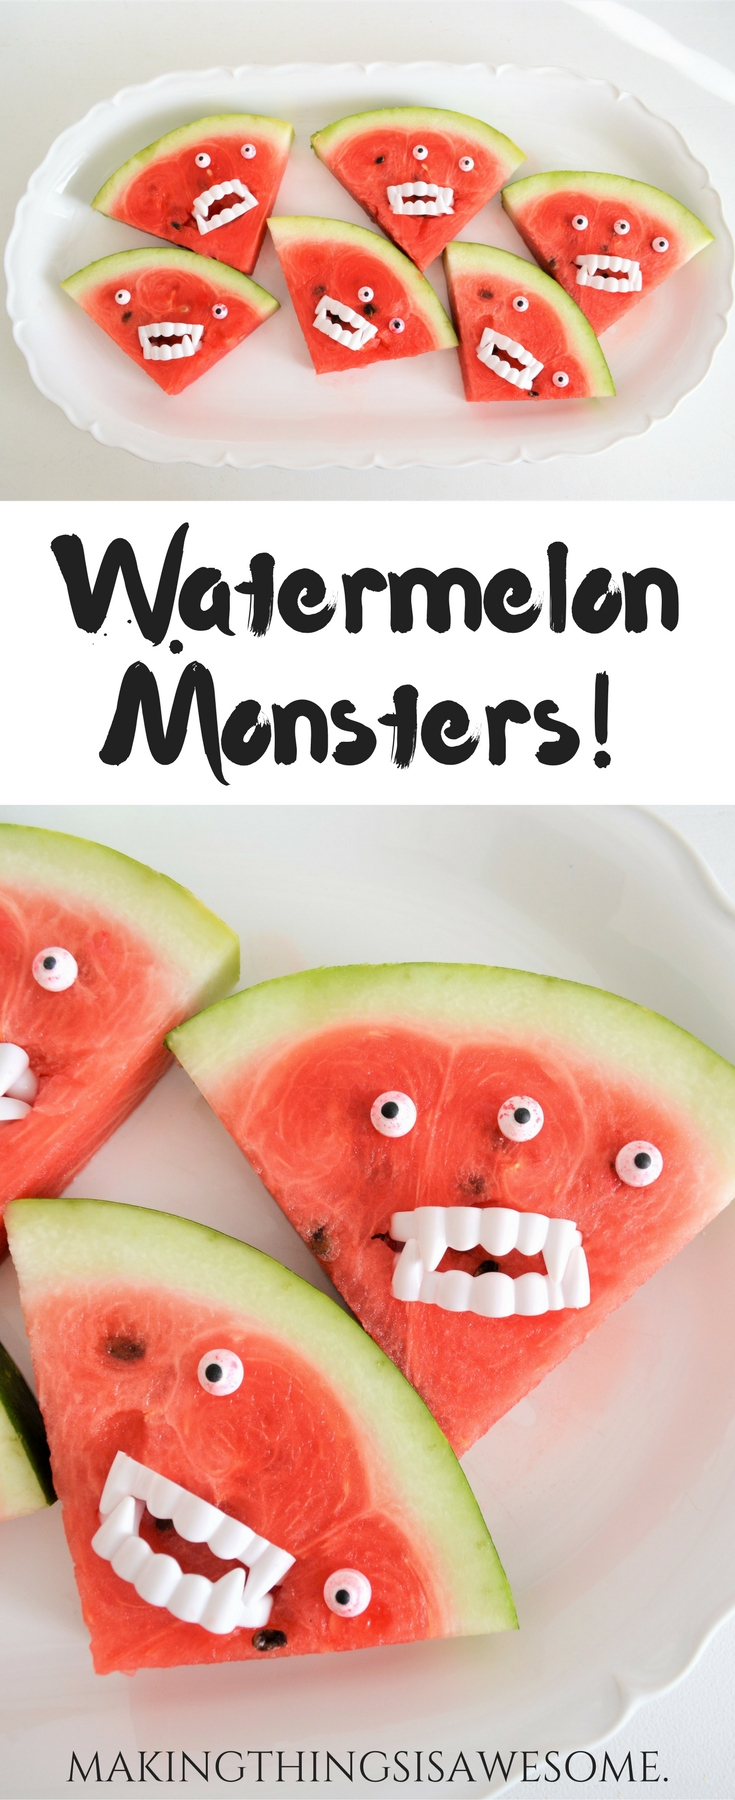 Watermelon Monsters! pin